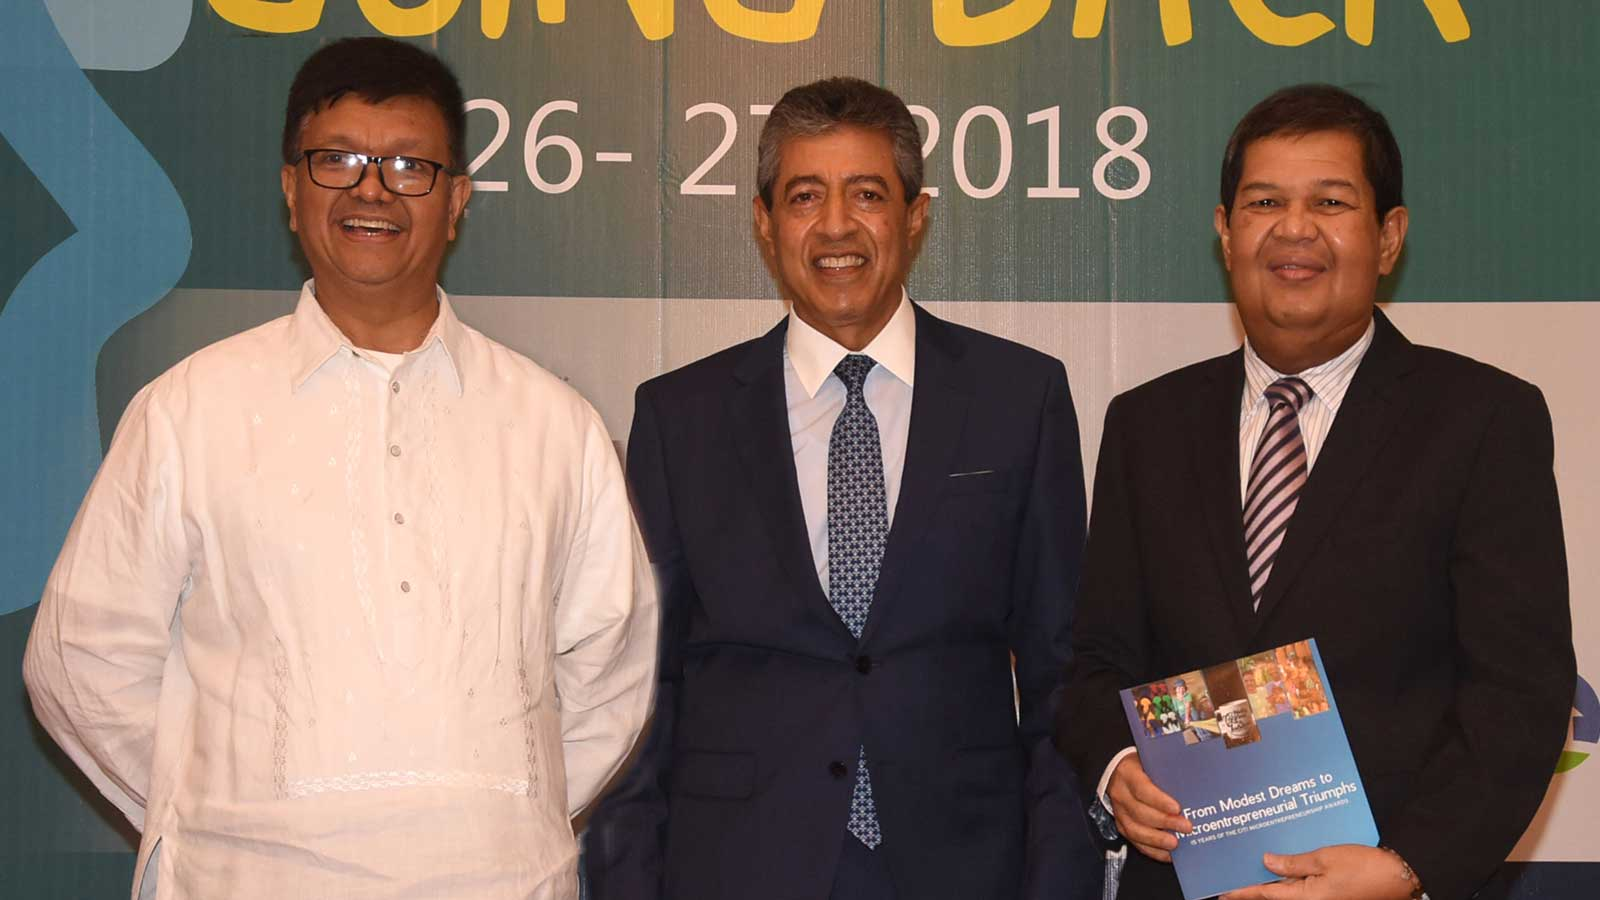 (L-R) Microfinance Council of the Philippines, Inc. chair Fr. Jose Victor Lobrigo; Citi Philippines CEO Aftab Ahmed and Bangko Sentral ng Pilipinas governor Nestor Espenilla, Jr.